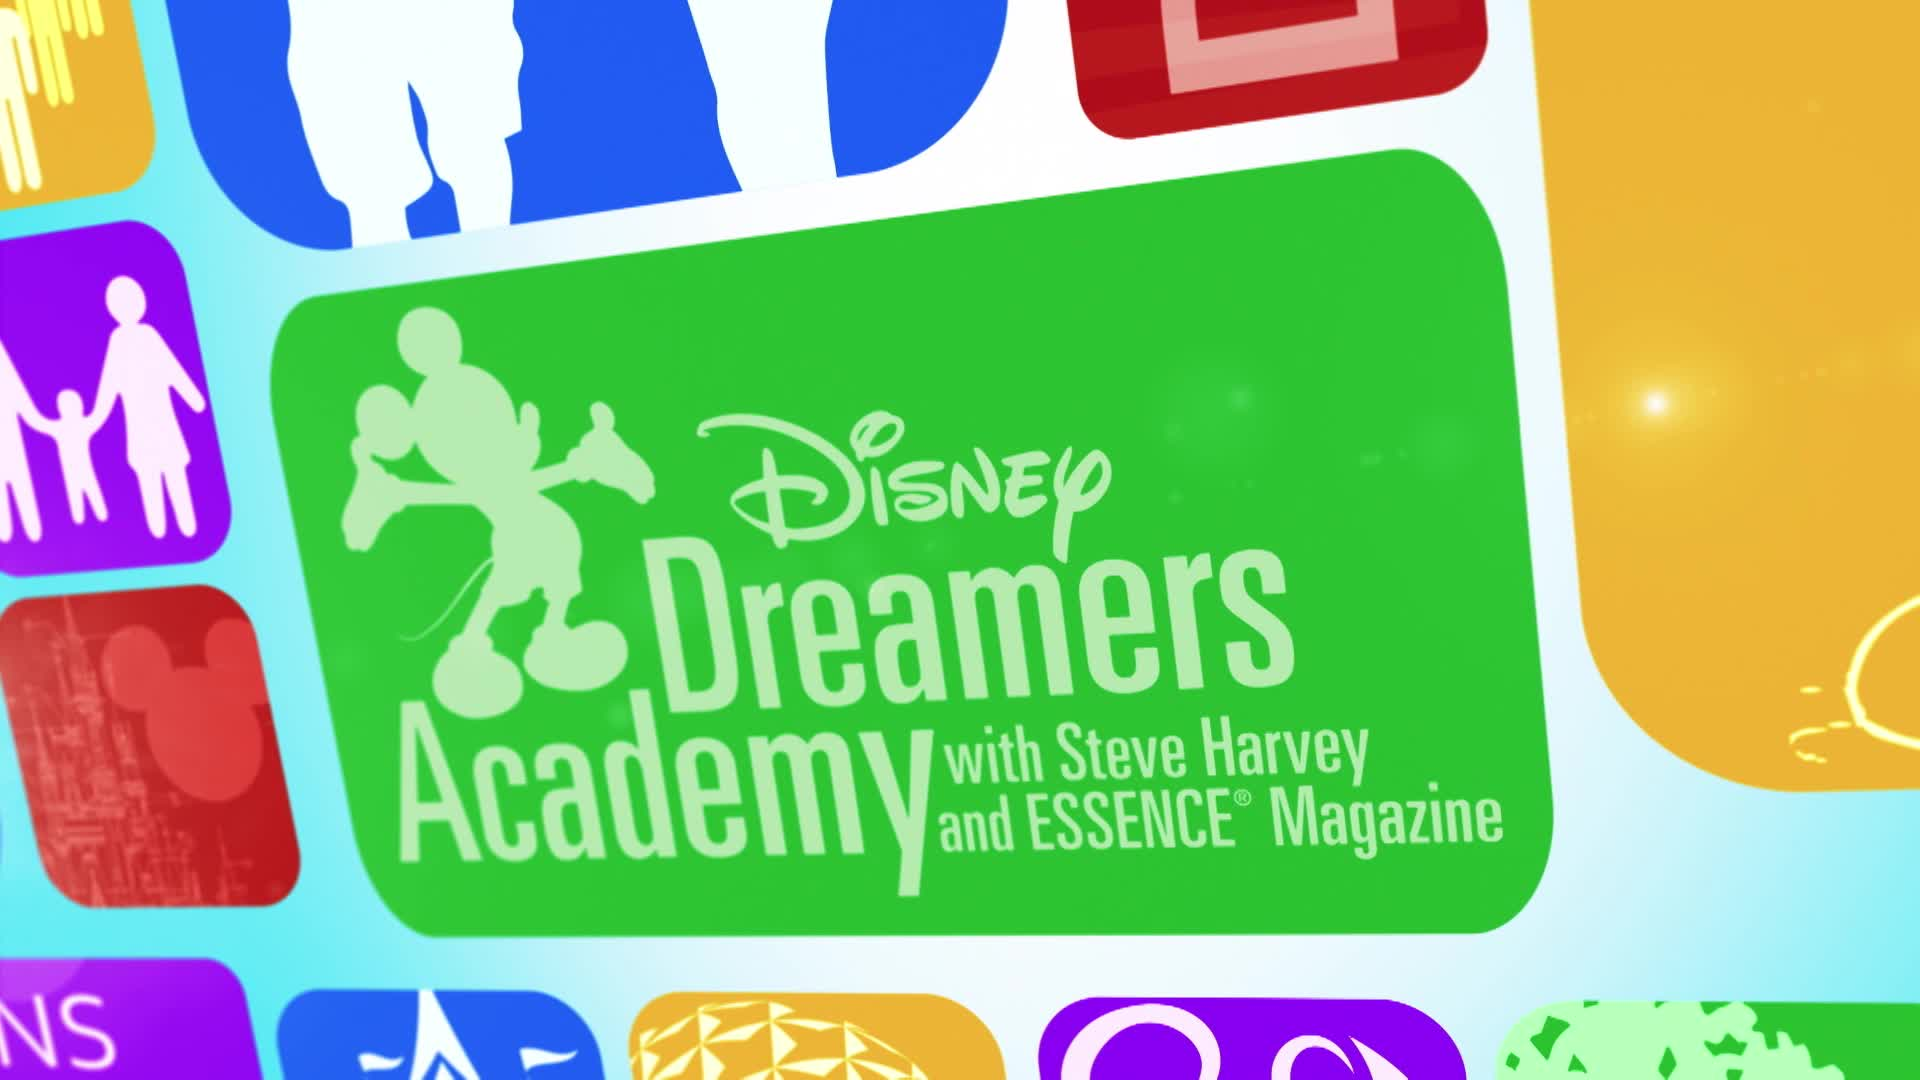 Disney Dreamers Class of 2016 - Brief video overview of 3-day event at Walt Disney World Resort.